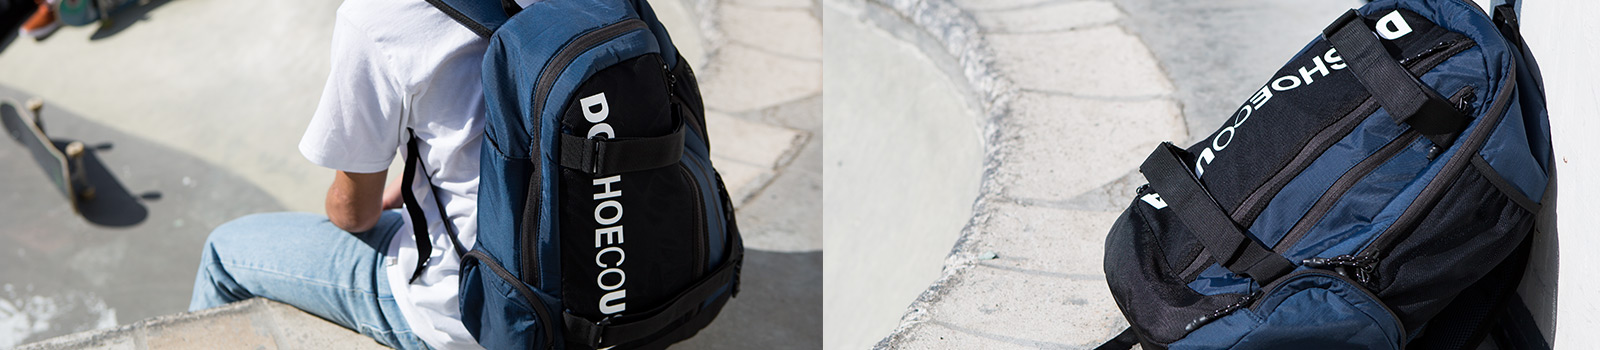 Mens Accessories: Luggage & Travel Bags by DC Shoes